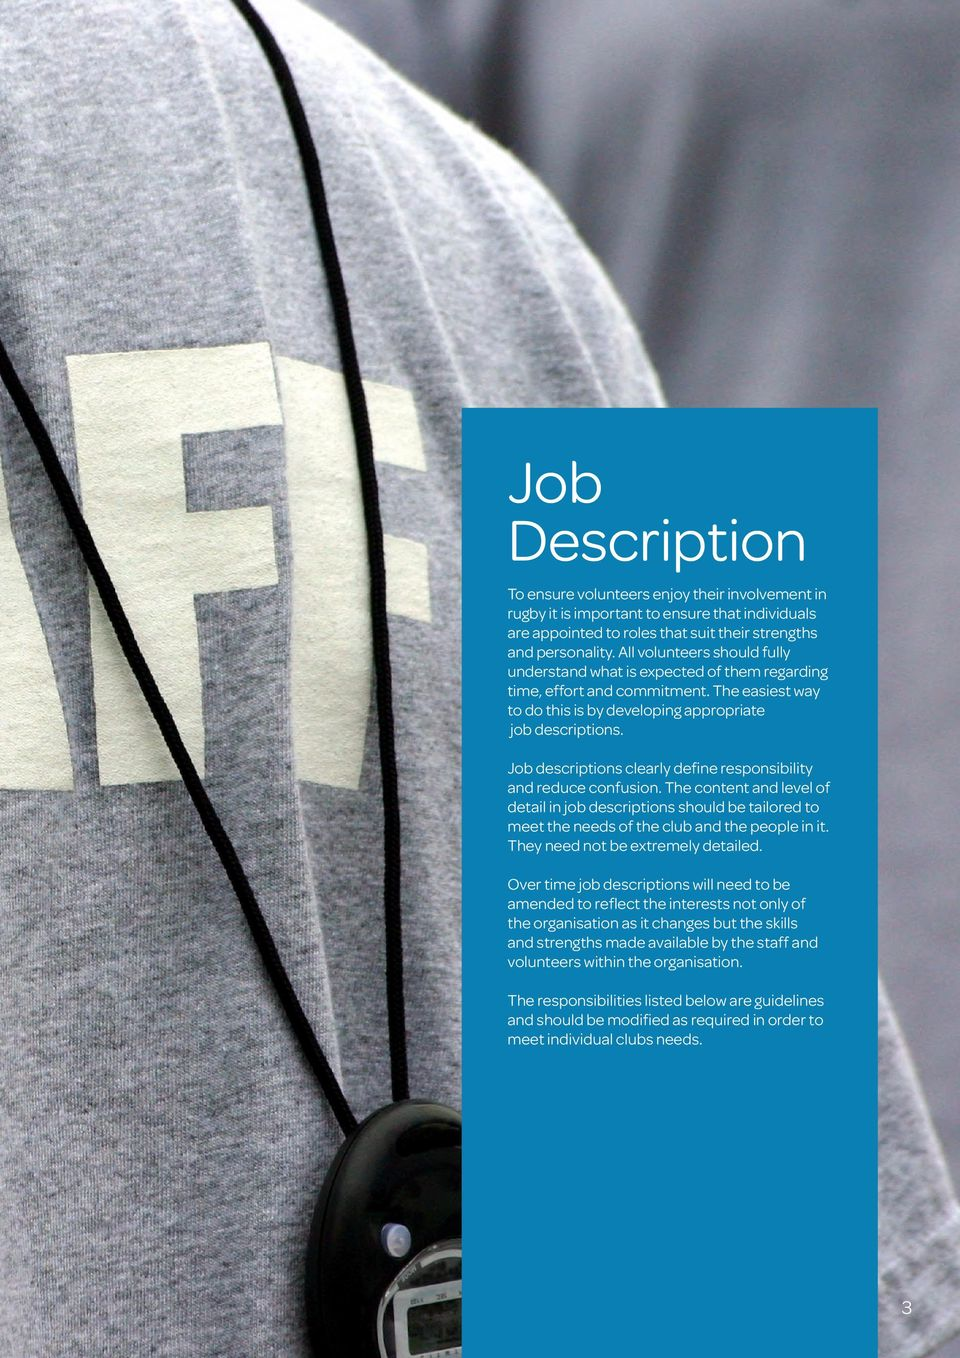 Job descriptions clearly define responsibility and reduce confusion. The content and level of detail in job descriptions should be tailored to meet the needs of the club and the people in it.